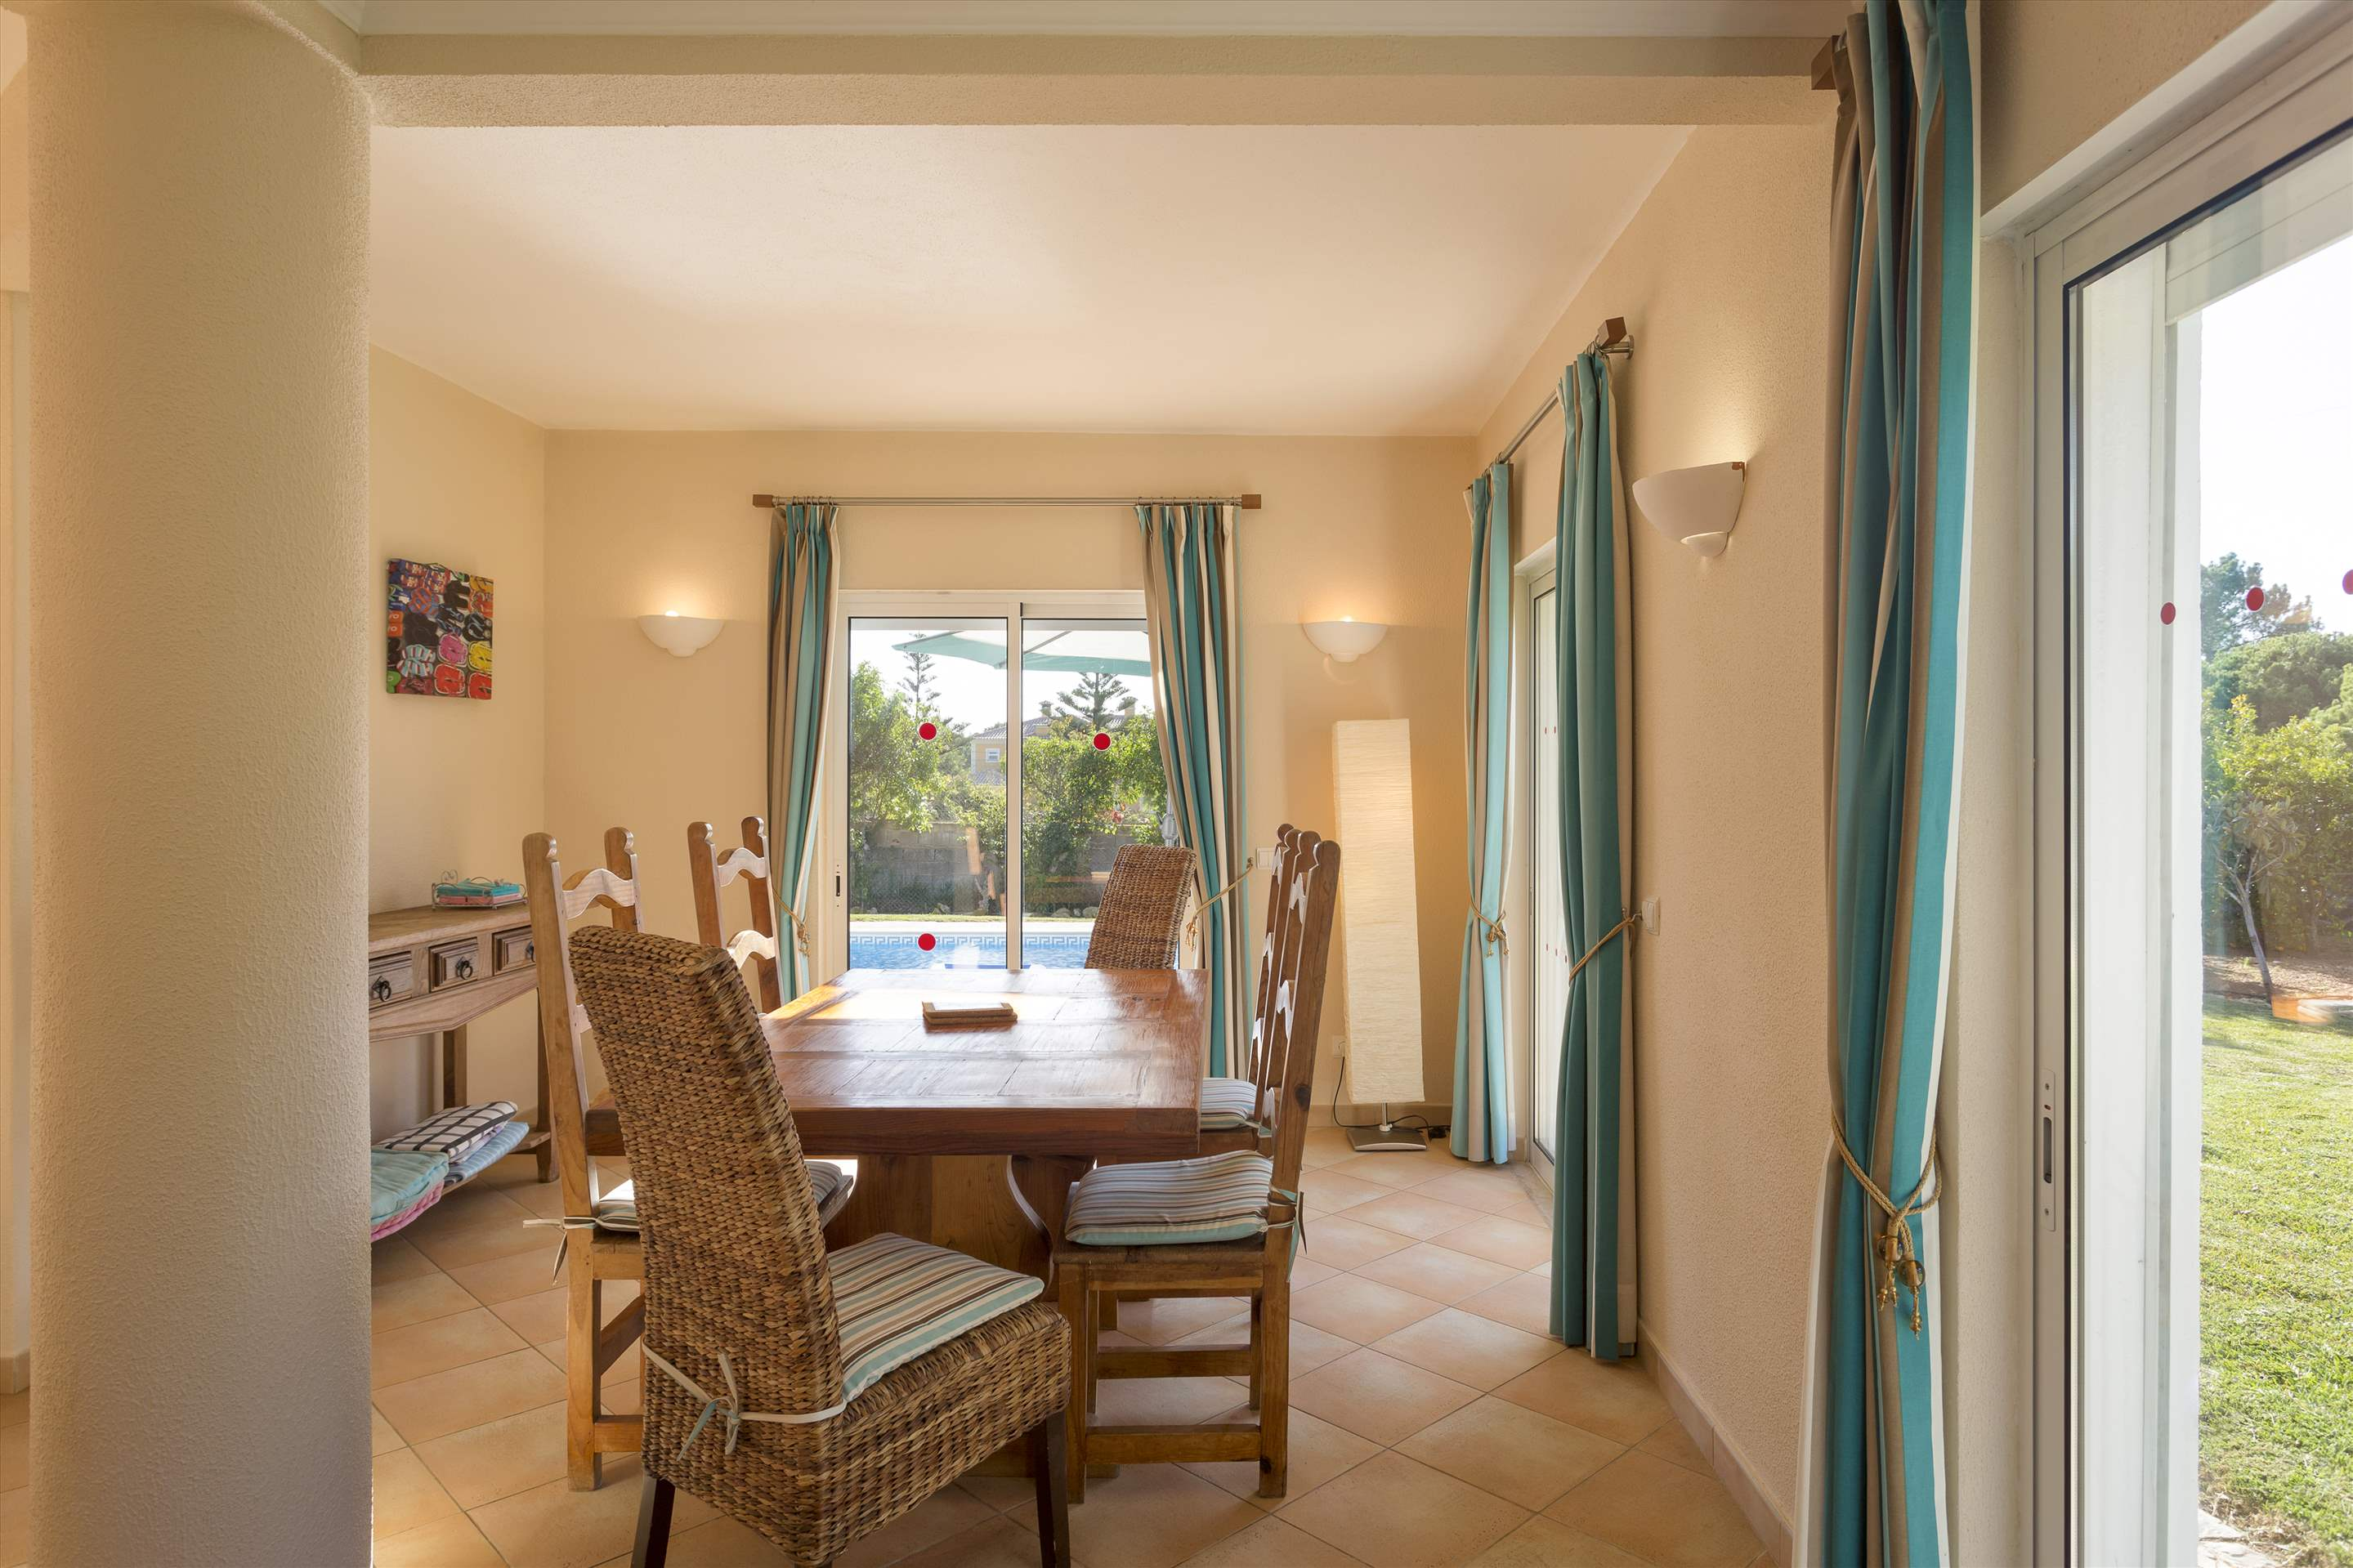 Casa Nova, 3 bedroom villa in Vilamoura Area, Algarve Photo #4